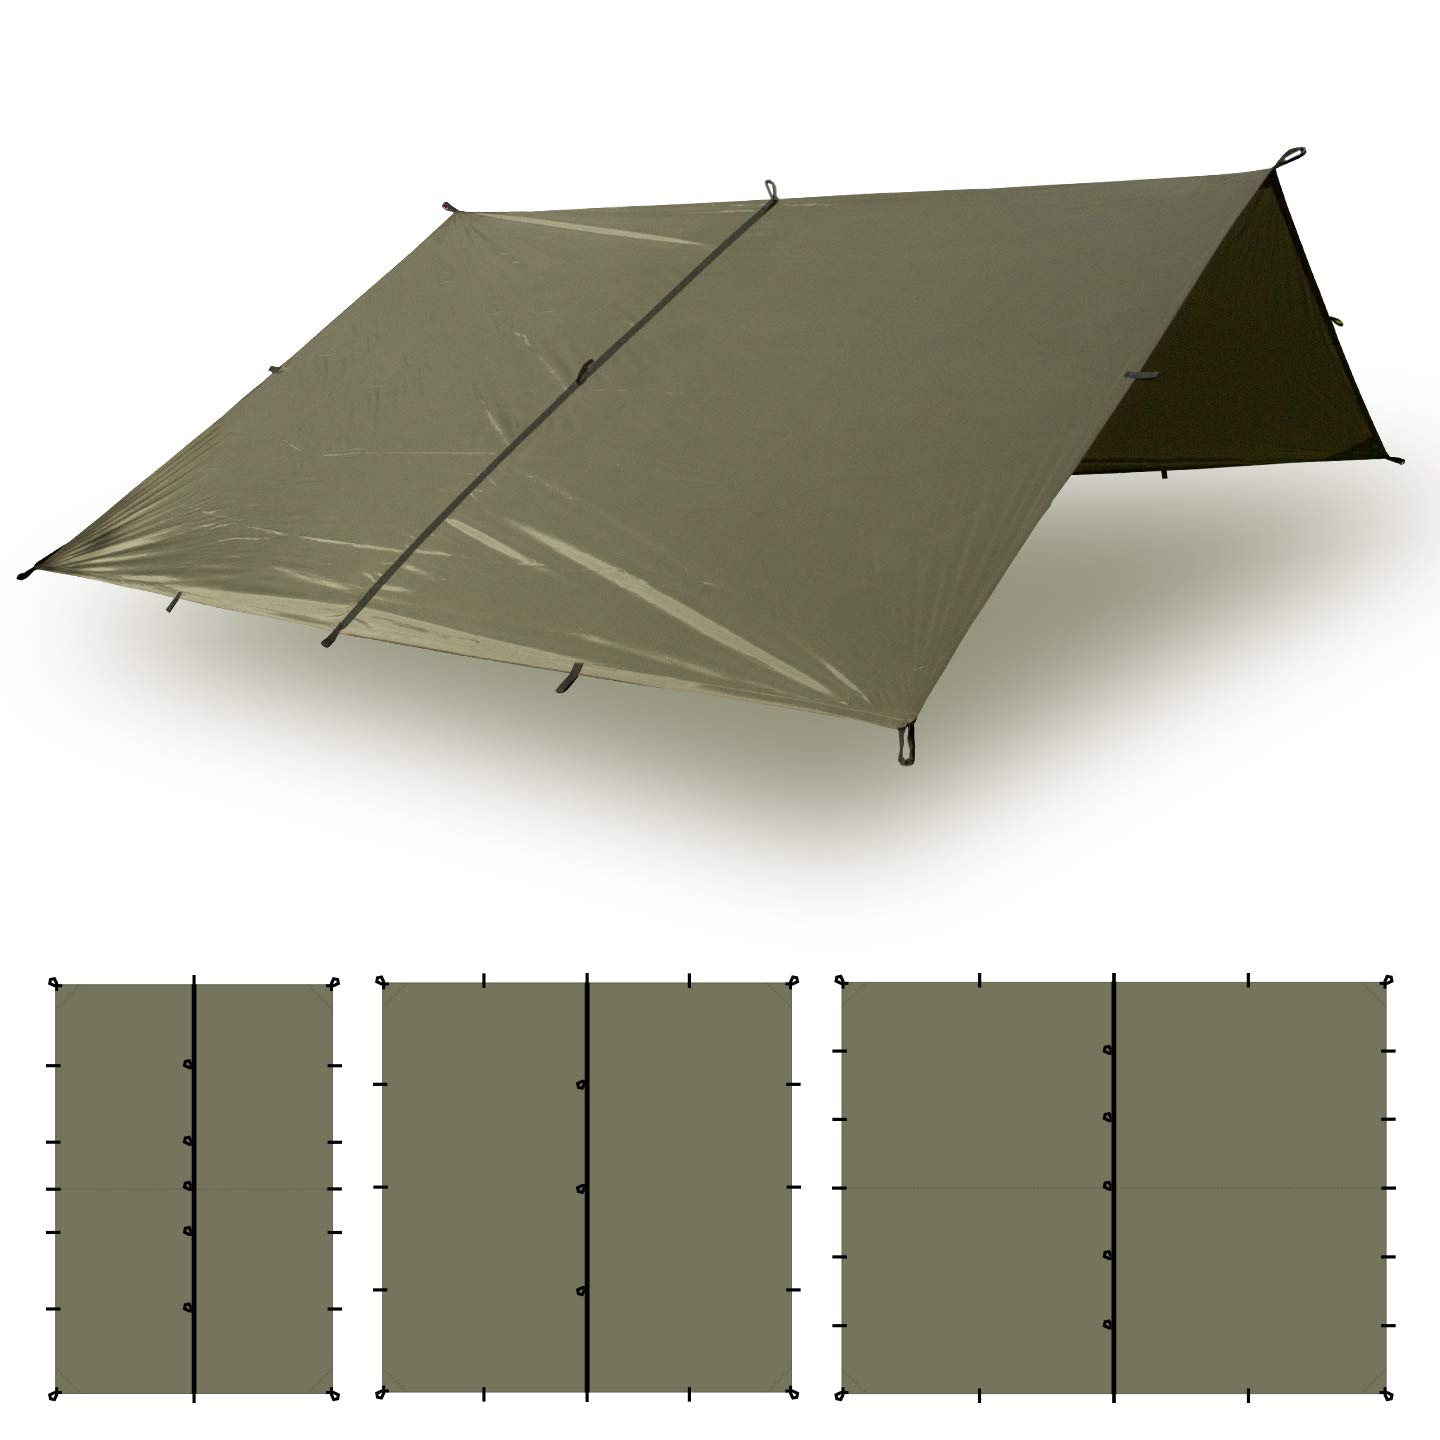 Aqua Quest Defender Tarp - 100% Waterproof Heavy Duty Nylon Bushcraft Survival Shelter - 10x7 Olive Drab by Aqua Quest